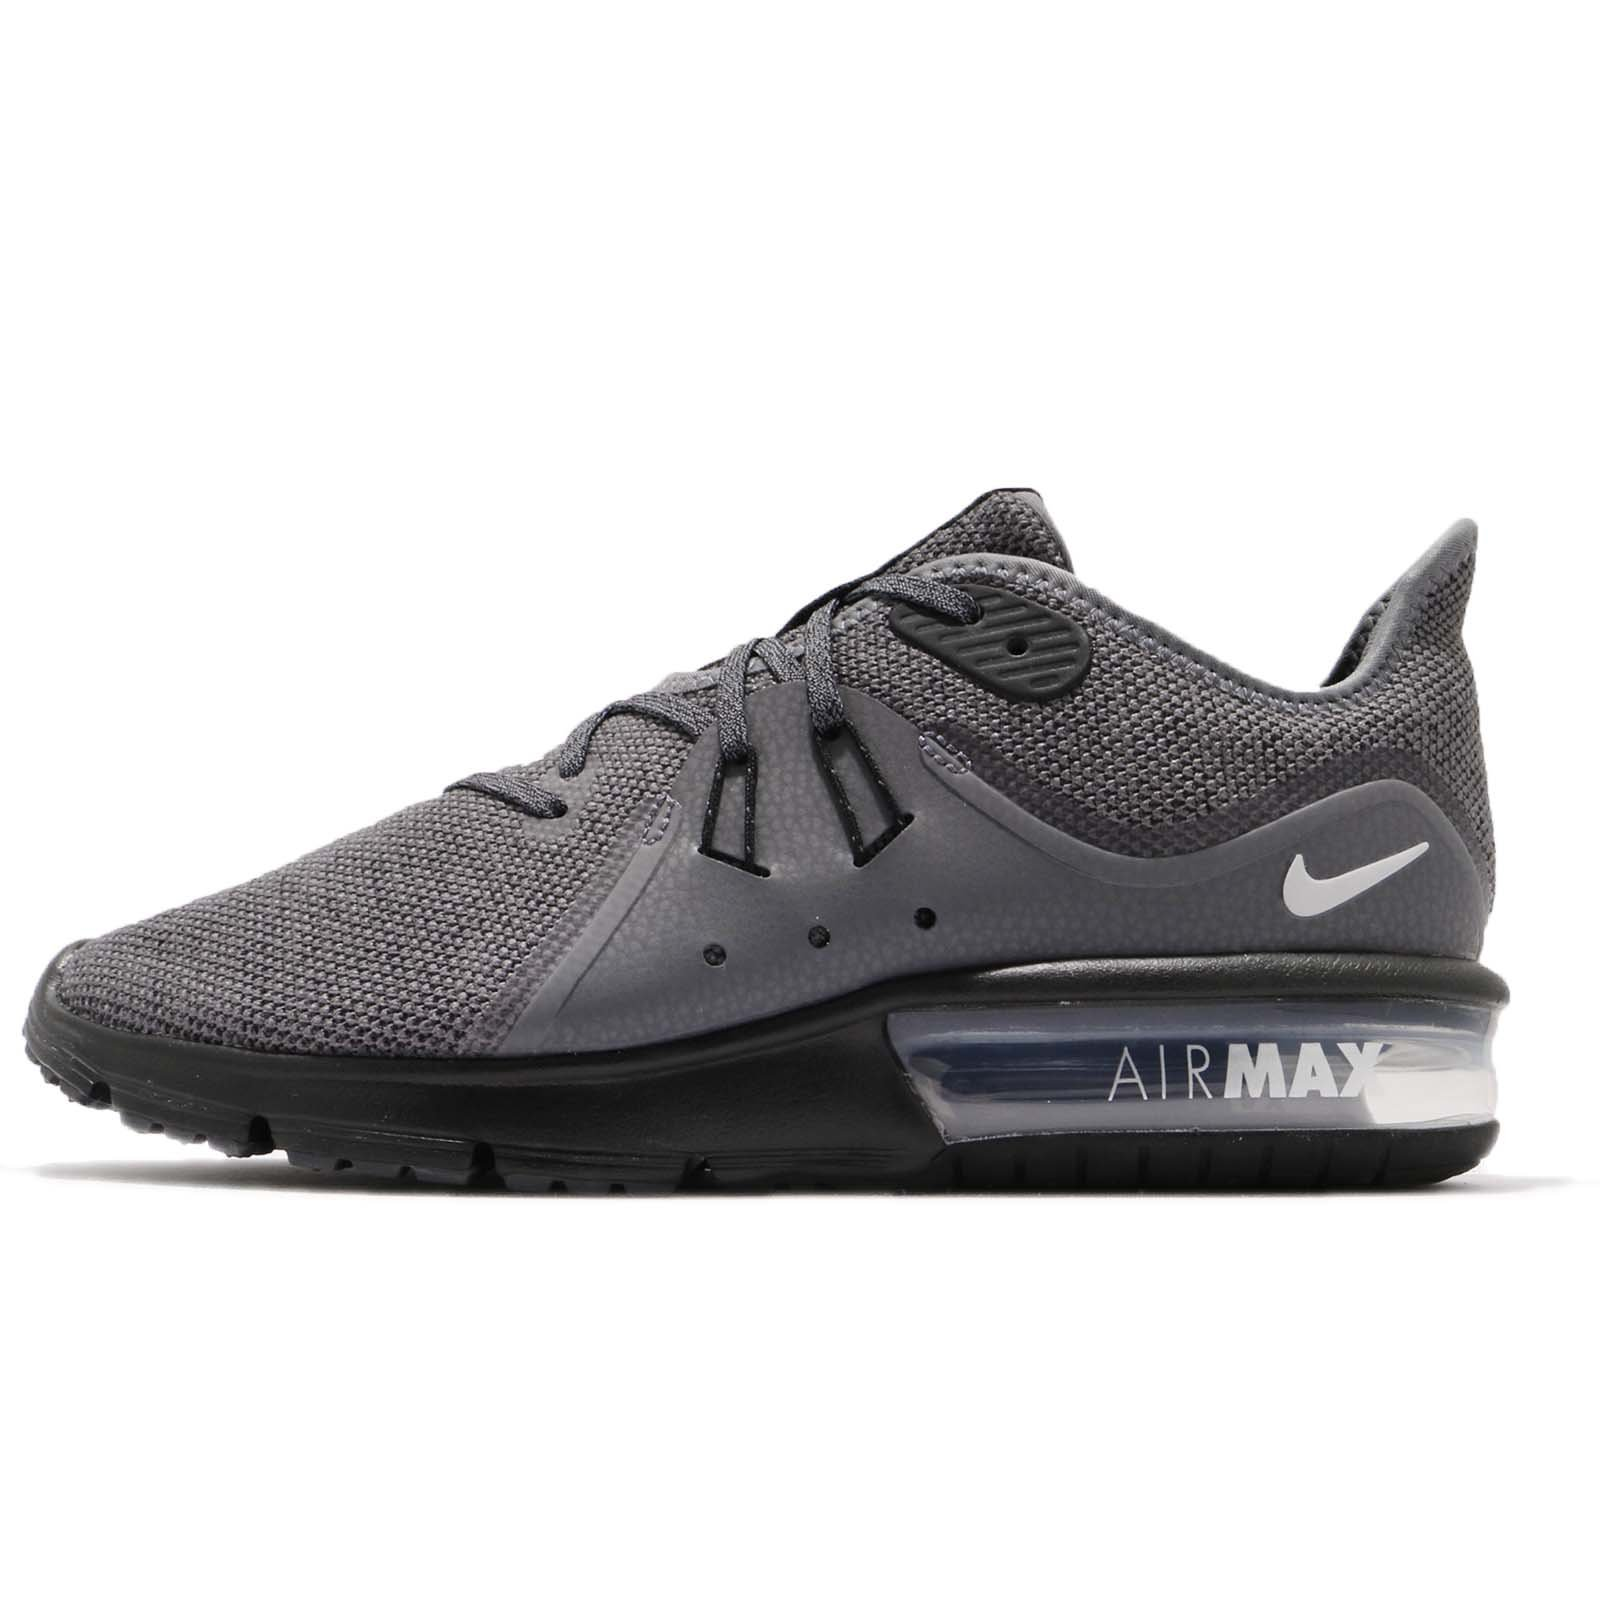 official photos f9128 0b8c3 Galleon - NIKE Mens Air Max Sequent 3 Running Shoe (11 D(M) US, Dark  GreyMetallic Silver-Black)